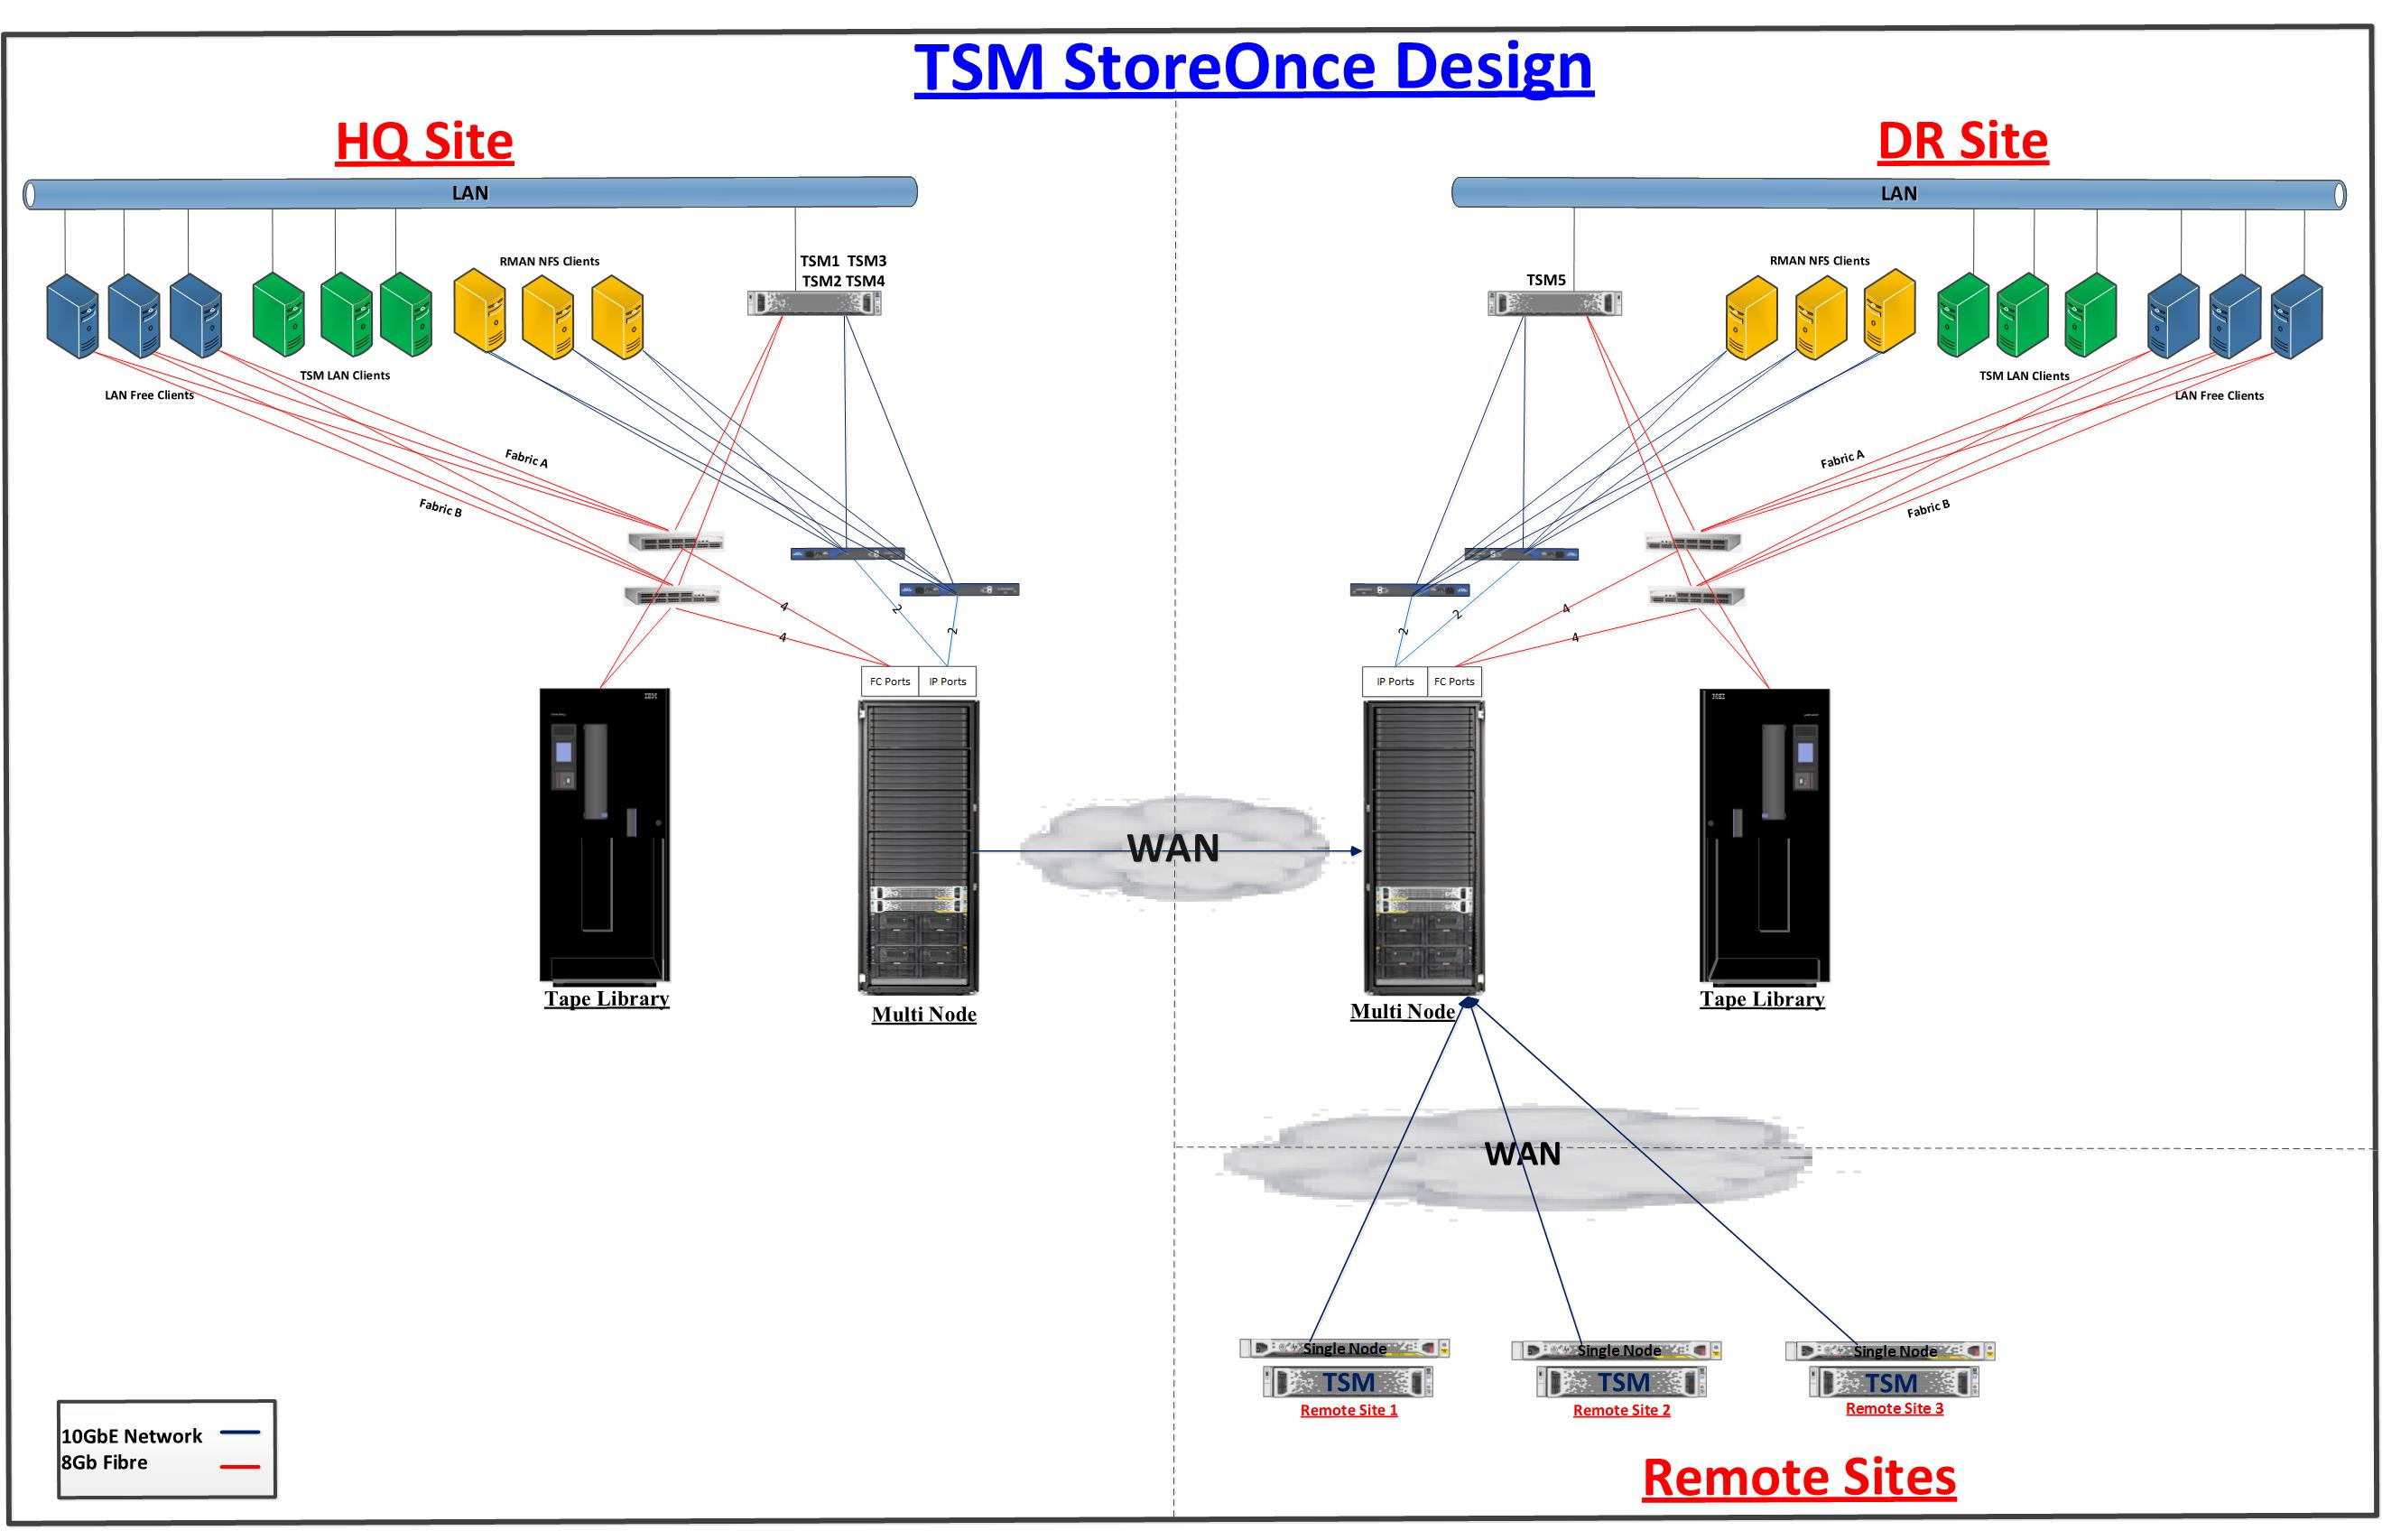 Tivoli Access Manager Architecture Overview Do You Need A Better Solution To Work With Your Ti